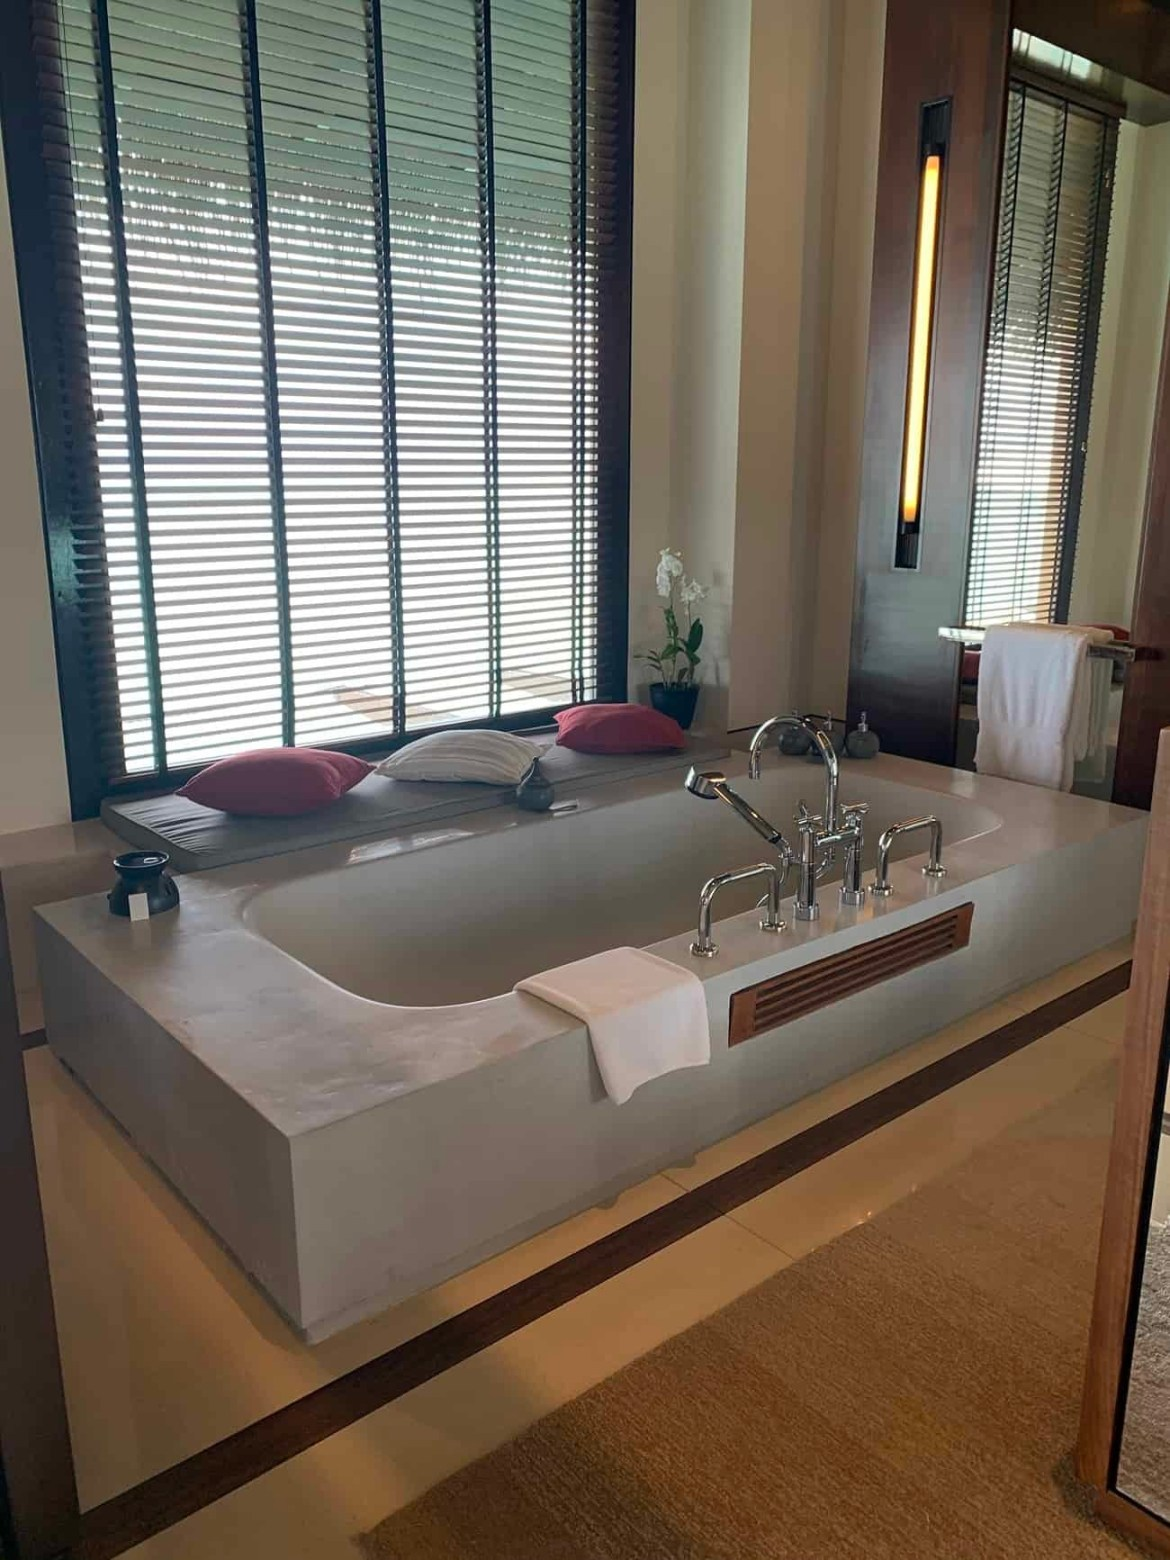 bath tub at Reethi Rah